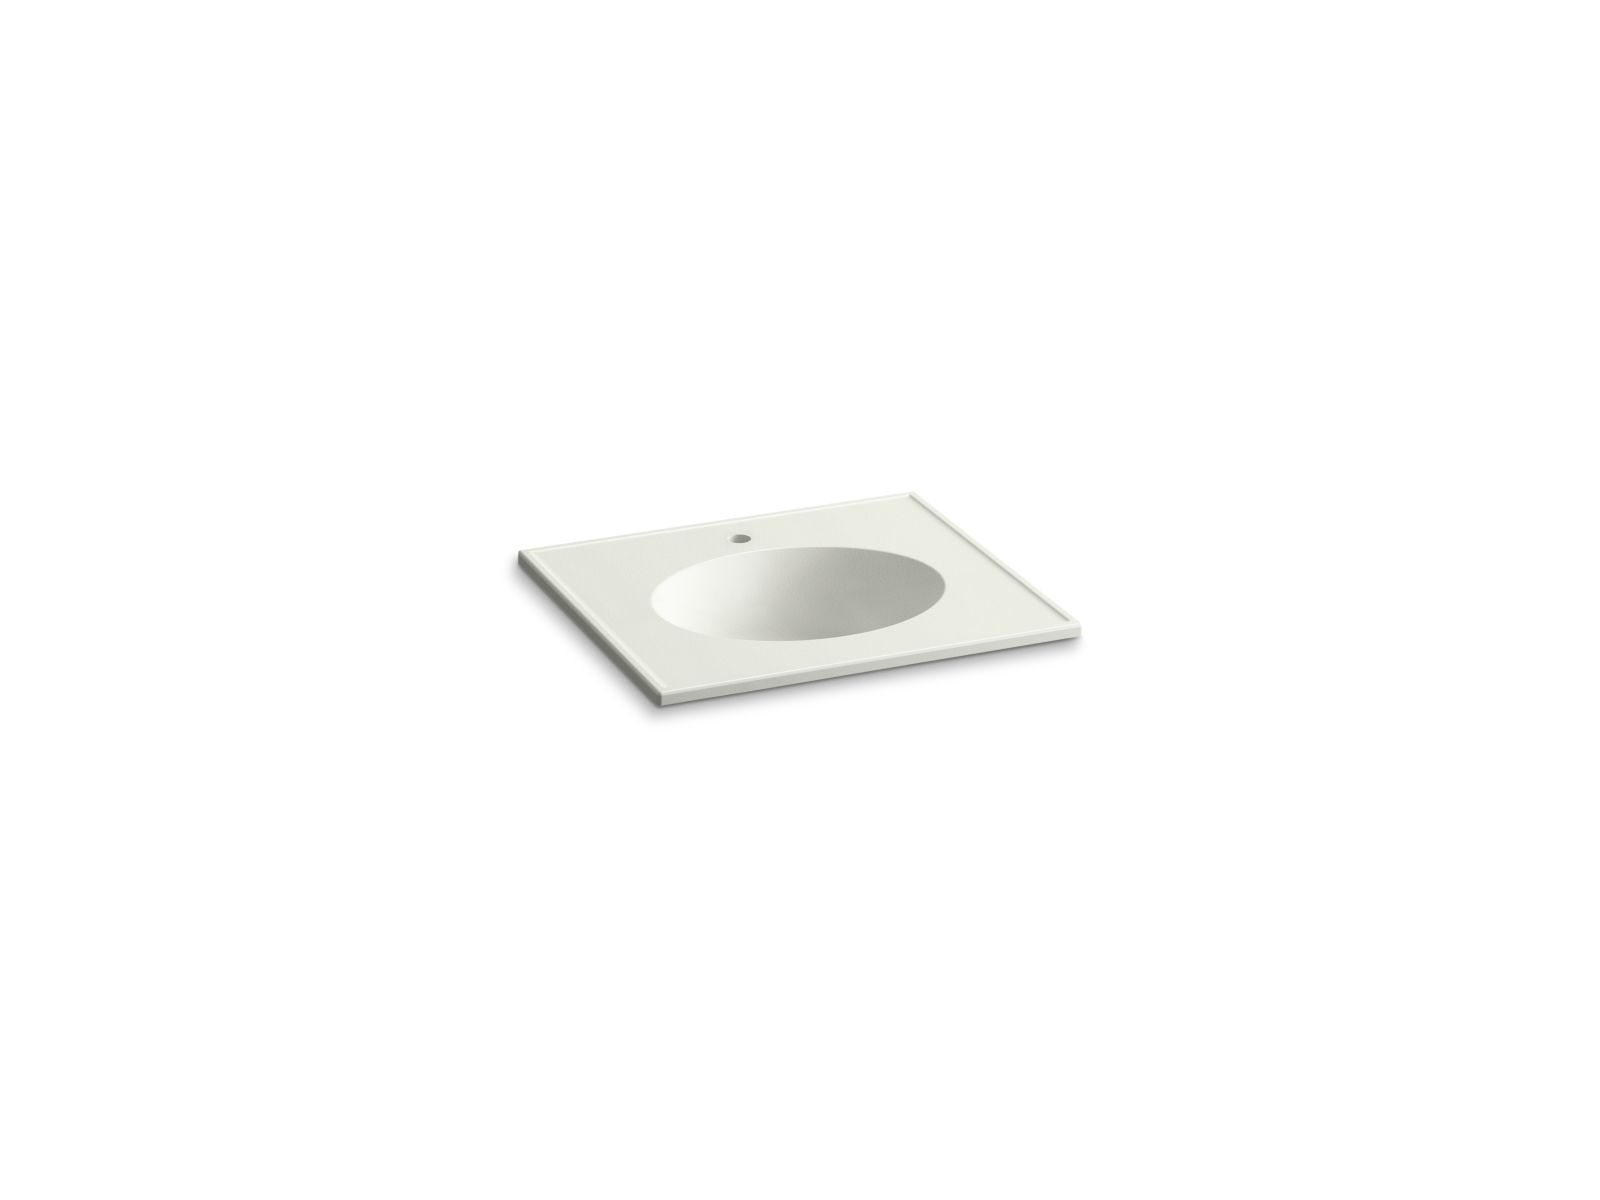 "Kohler Ceramic/Impressions™ K-2791-1-G82 25"" oval vanity-top bathroom sink with single faucet hole Dune Impressions"